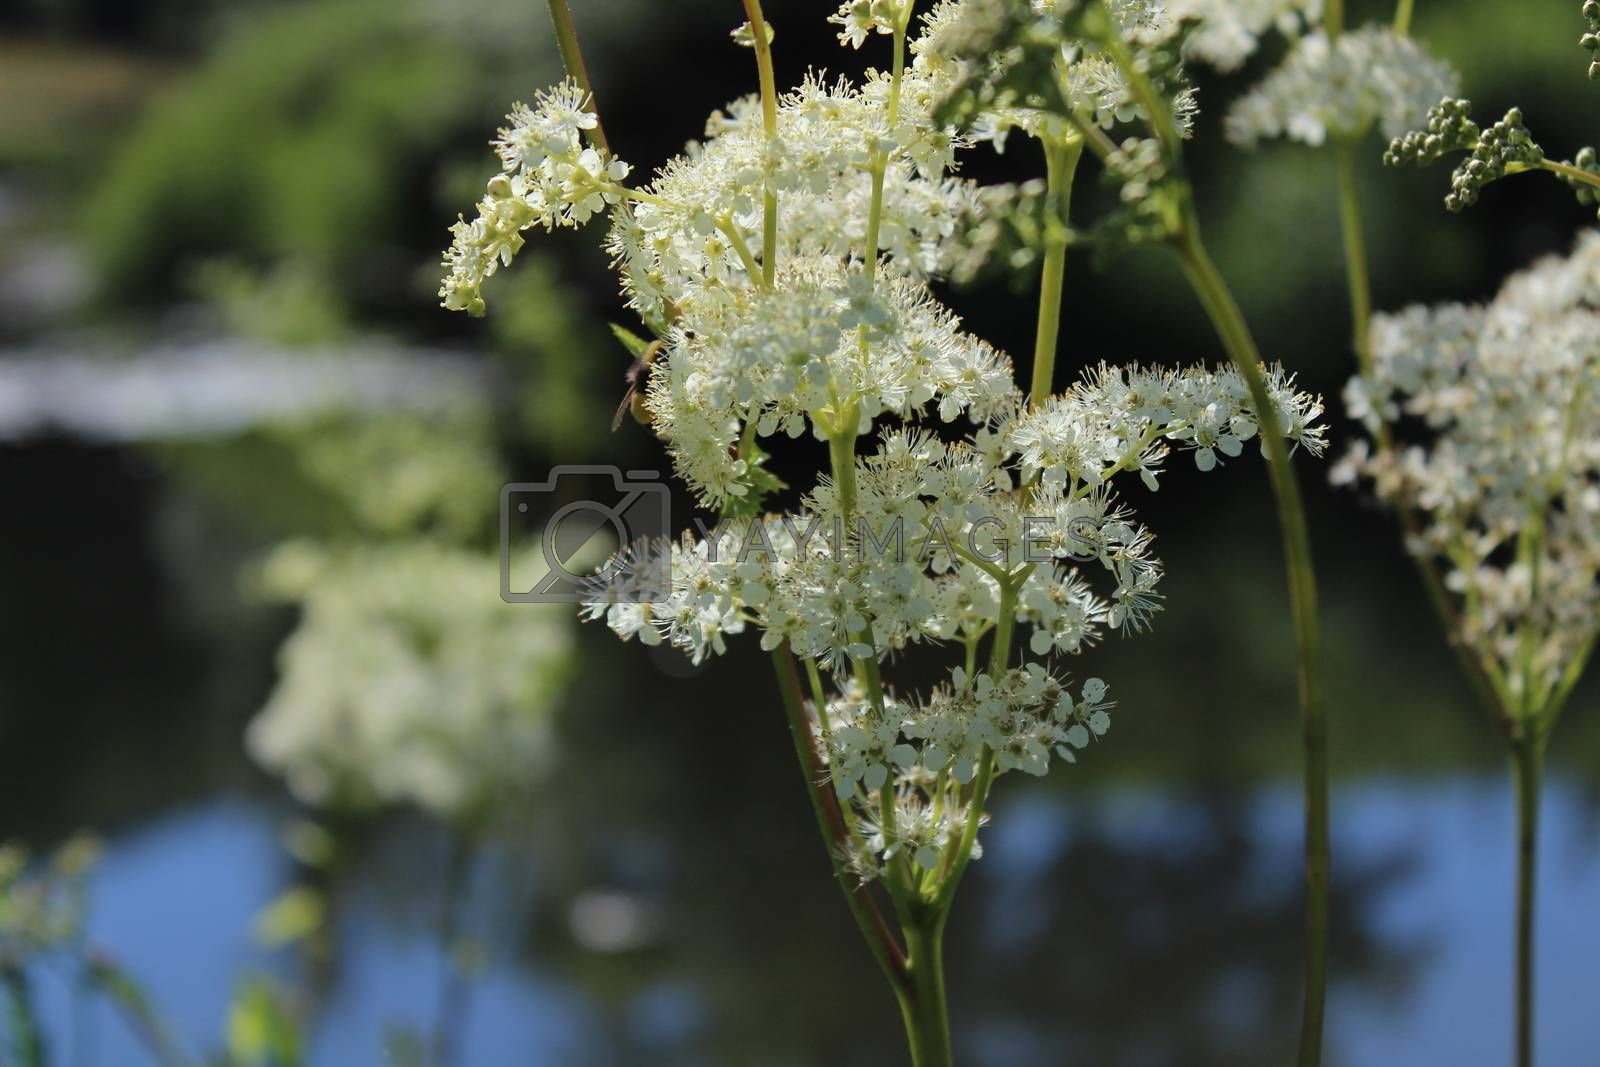 Royalty free image of blossoming meadowsweet in the meadow by martina_unbehauen